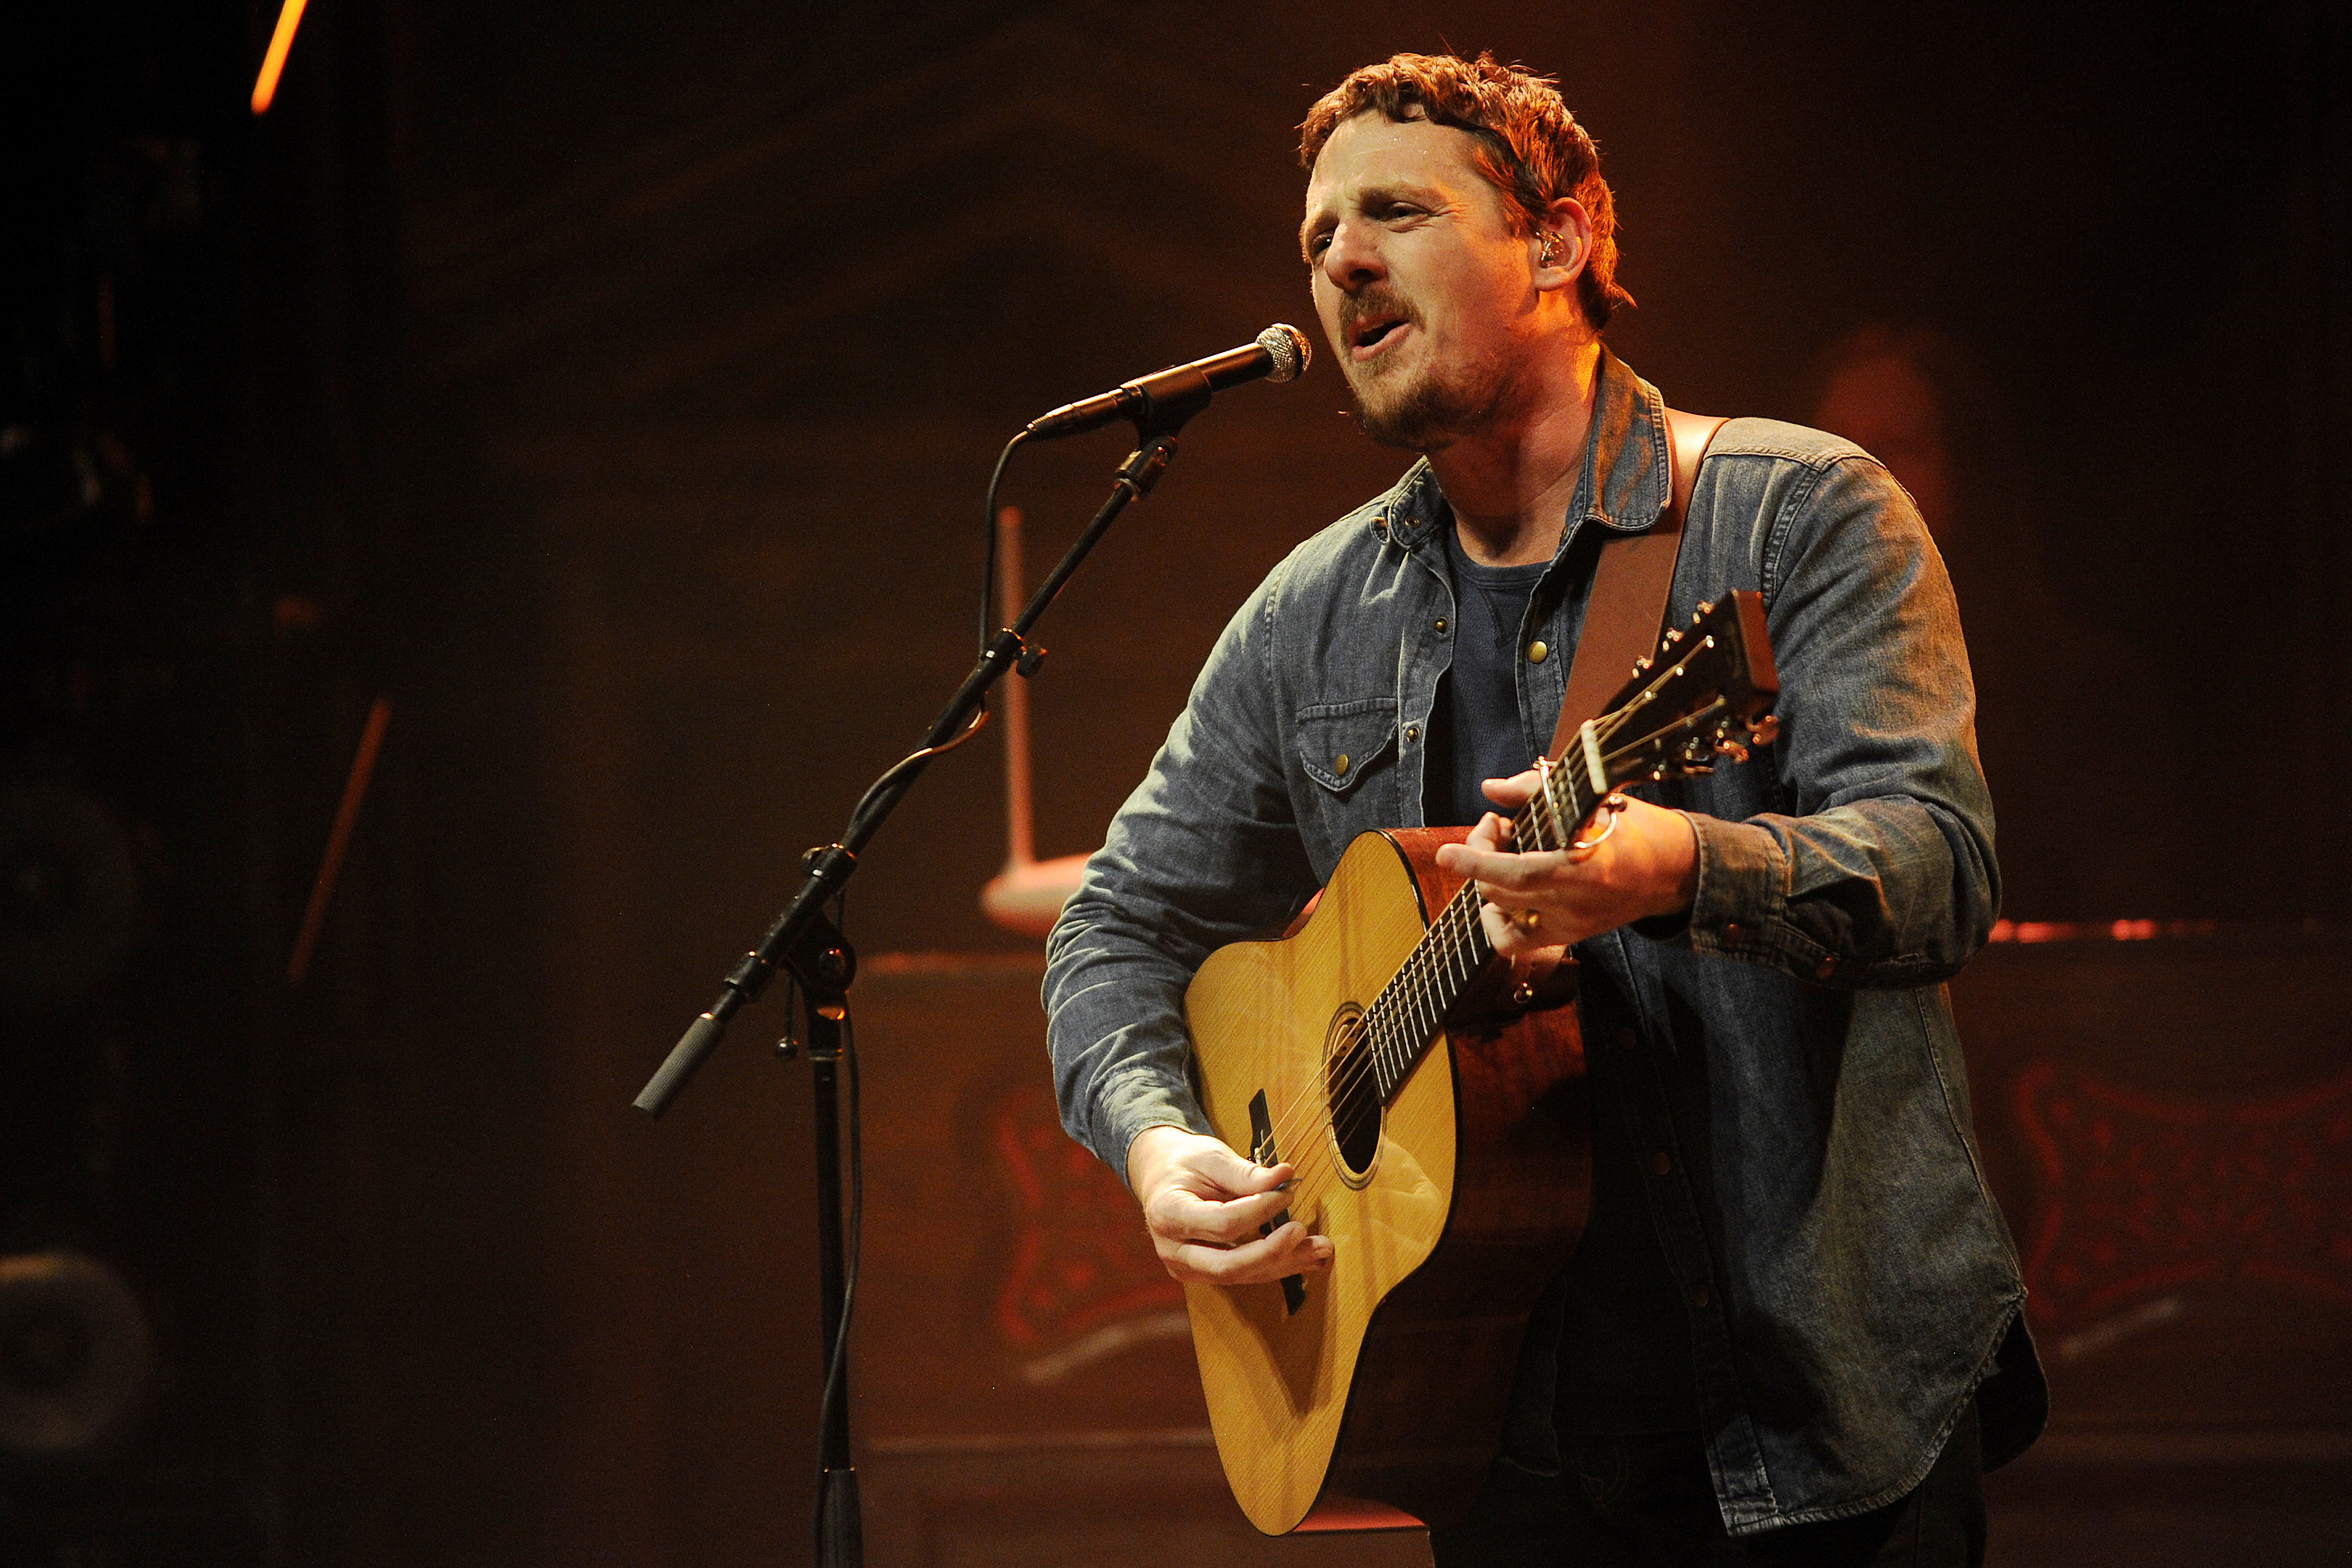 Hear Sturgill Simpson's Hypnotic New Song 'Brace for Impact